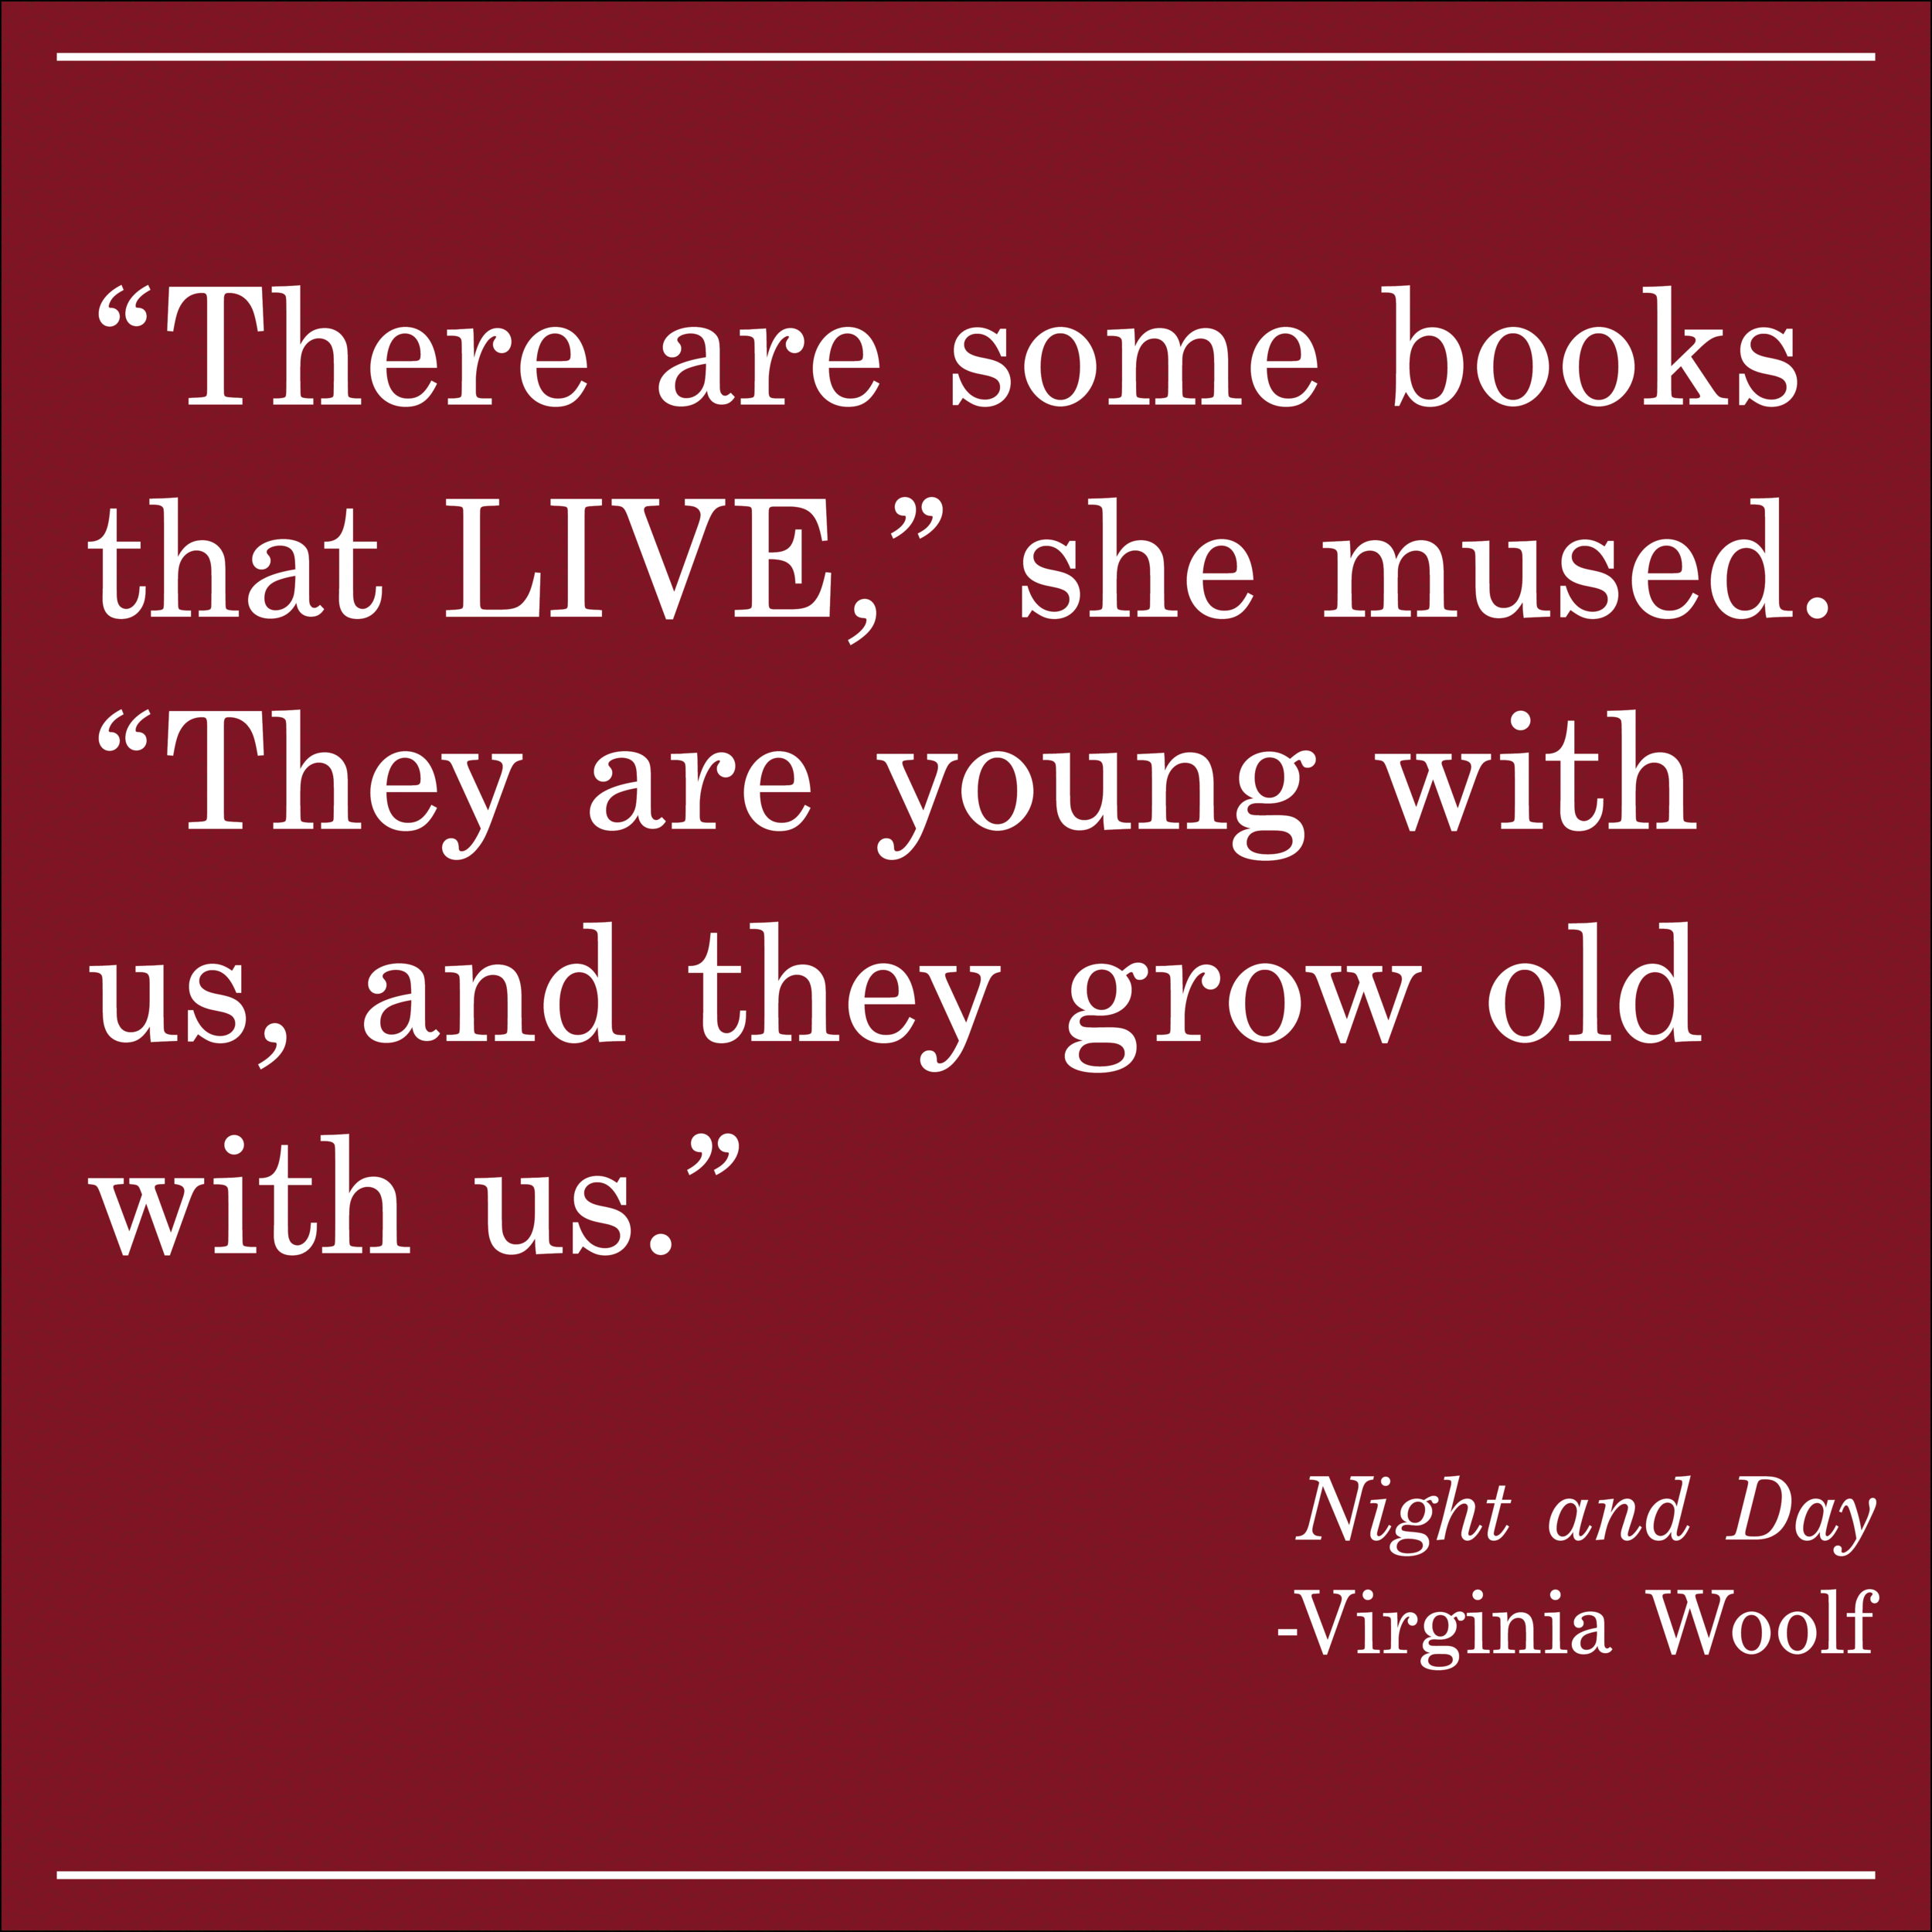 Daily Quote Virginia Woolf Night and Day